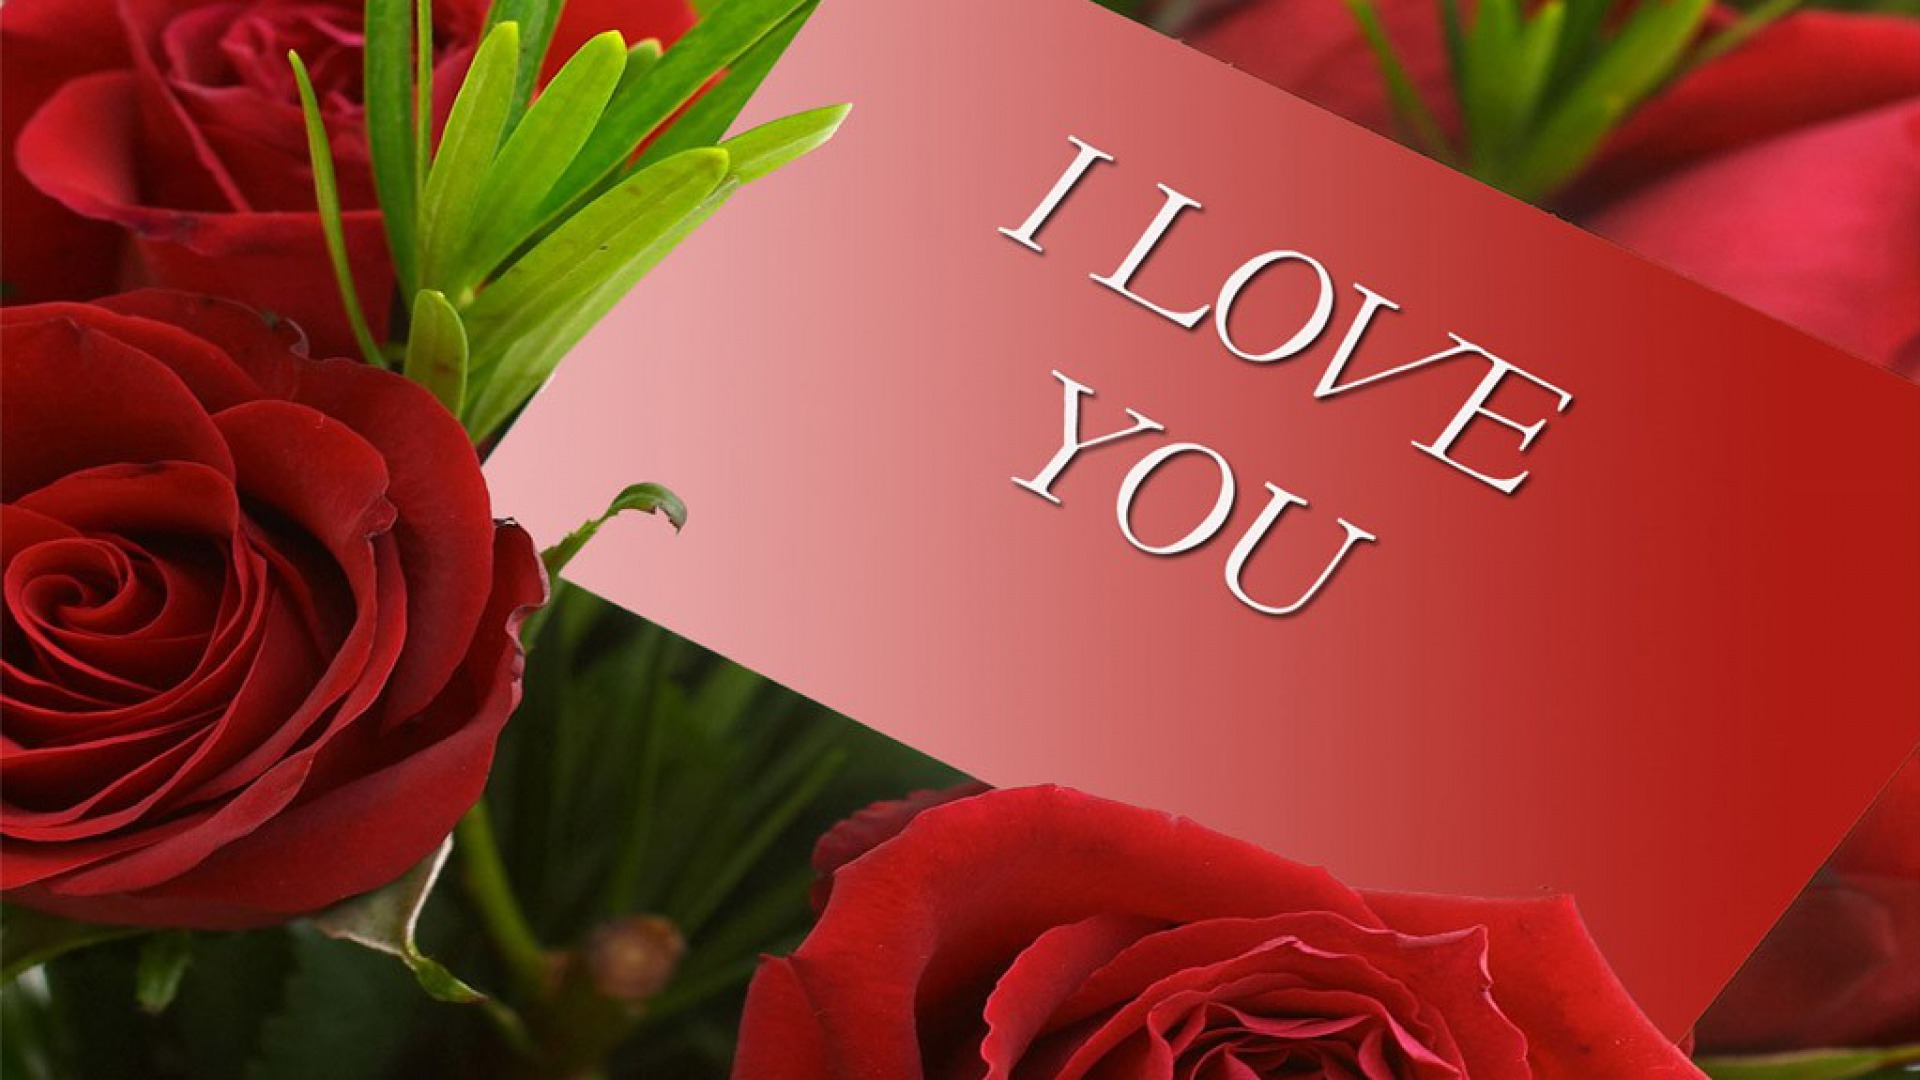 Full HD I Love You Images, Wallpapers for Desktop, HBC OAY: Images Of Love You,  Beautiful Love You Wallpapers 1920x1080